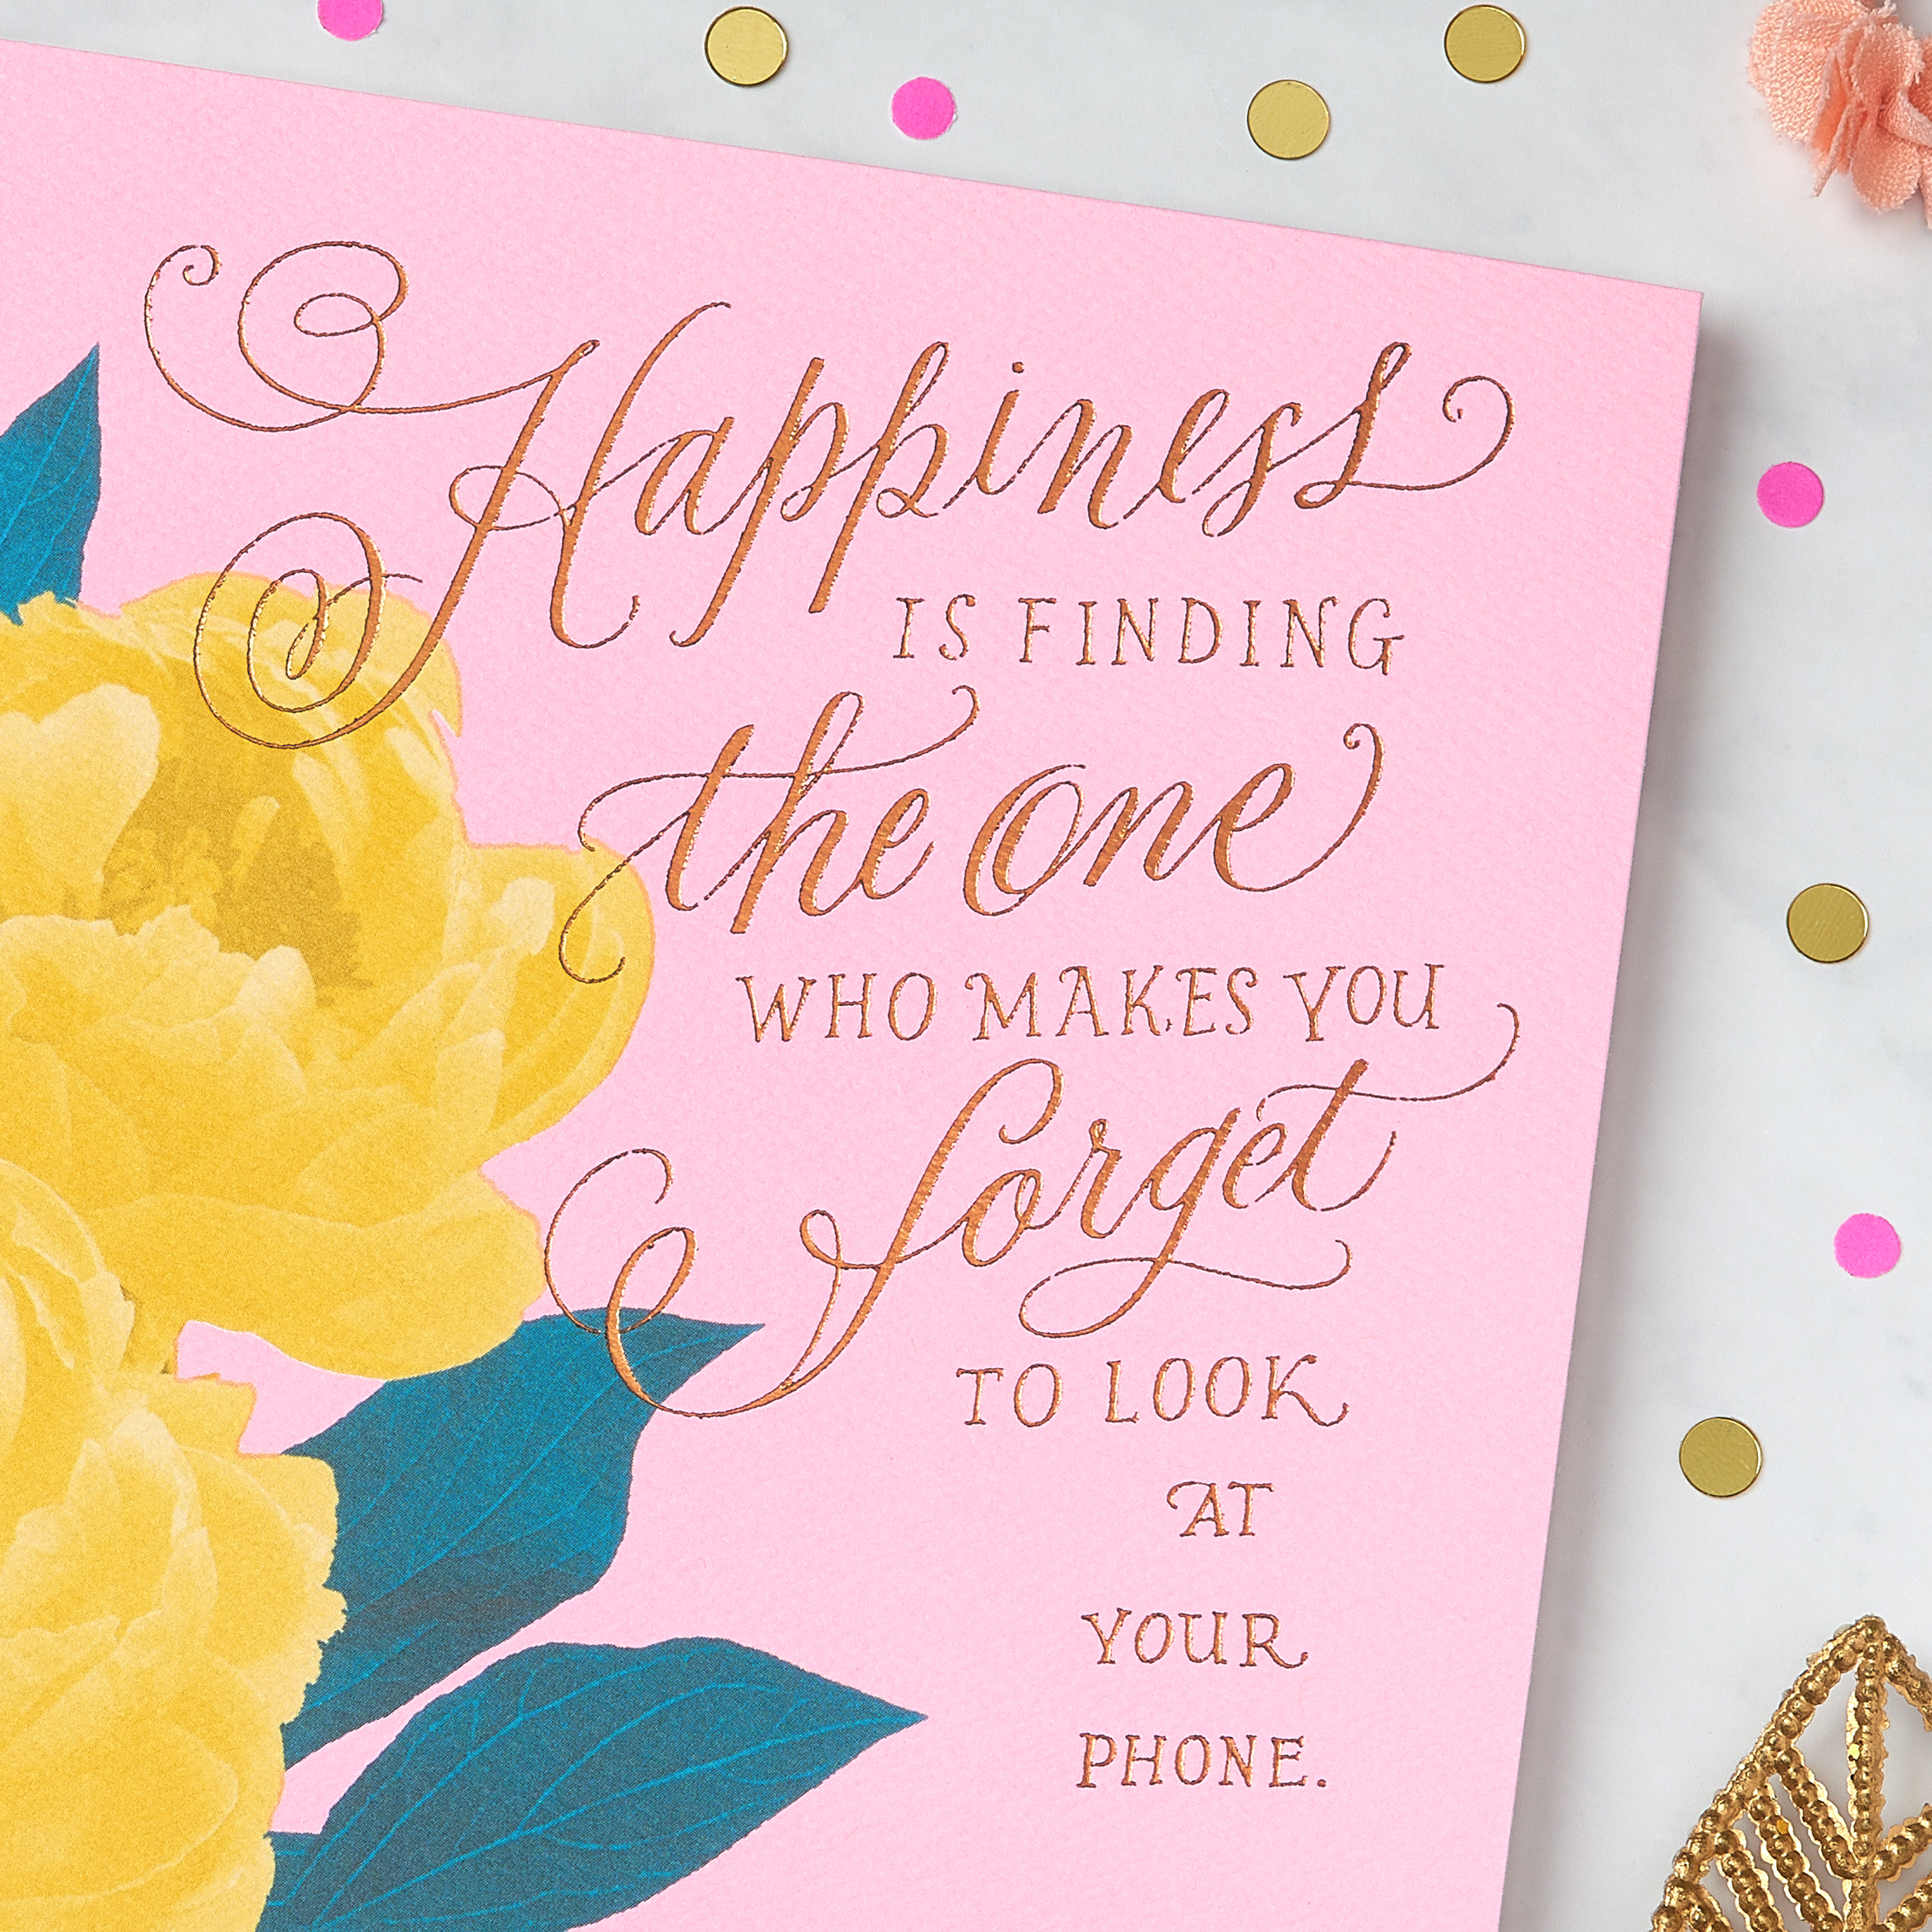 Floral Greeting Card - Romantic, Engagement, Wedding, Anniversary, Thinking of You image